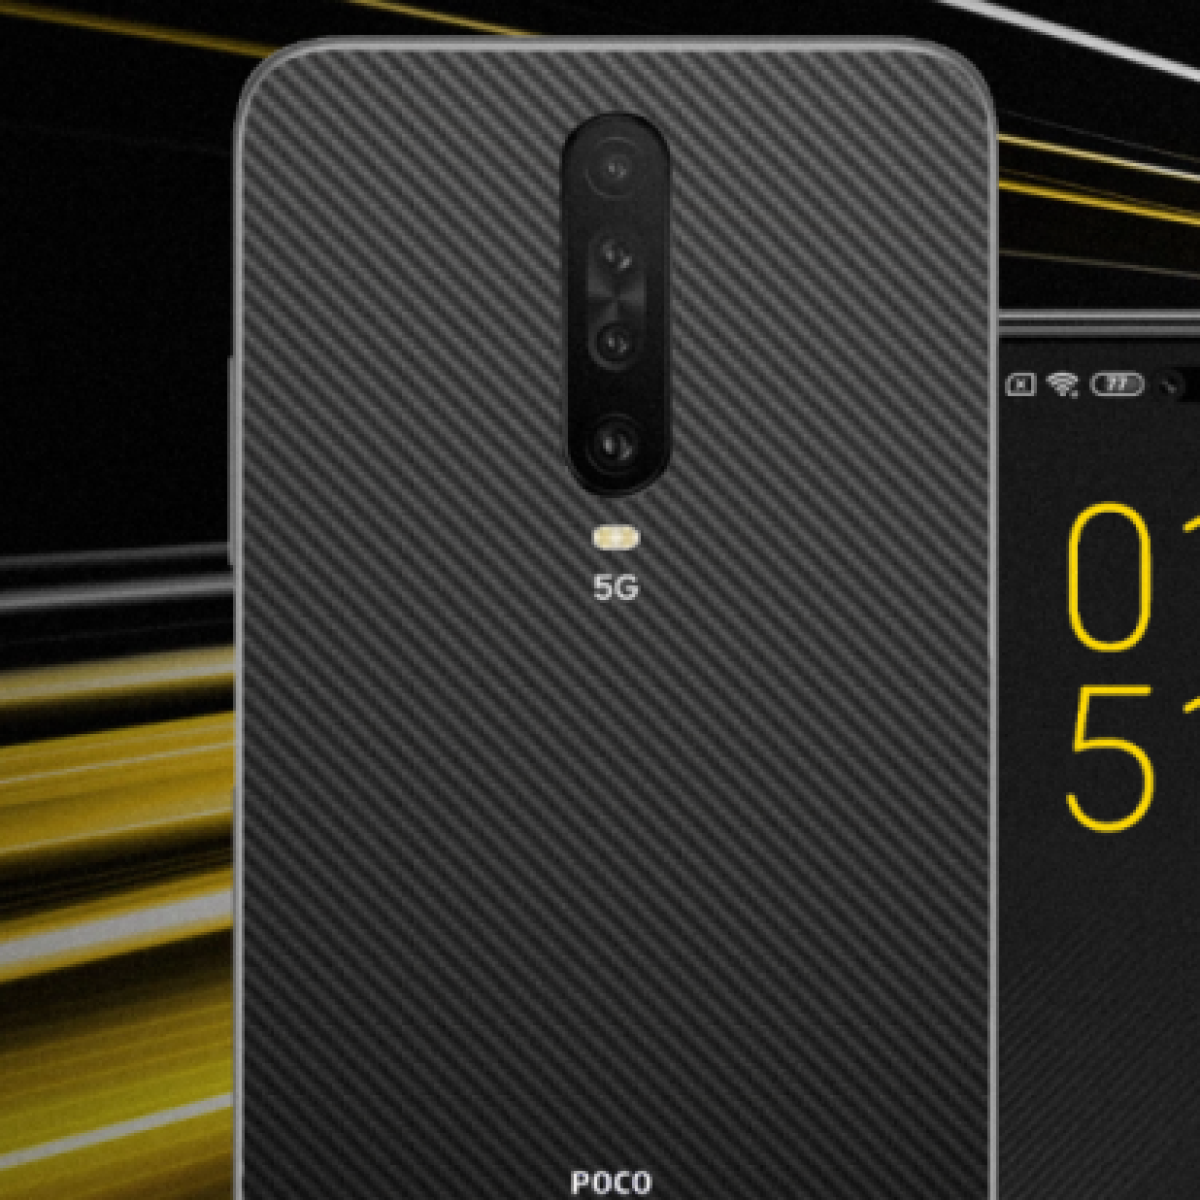 POCO X2 launching on Feb 4 with high refresh rate screen